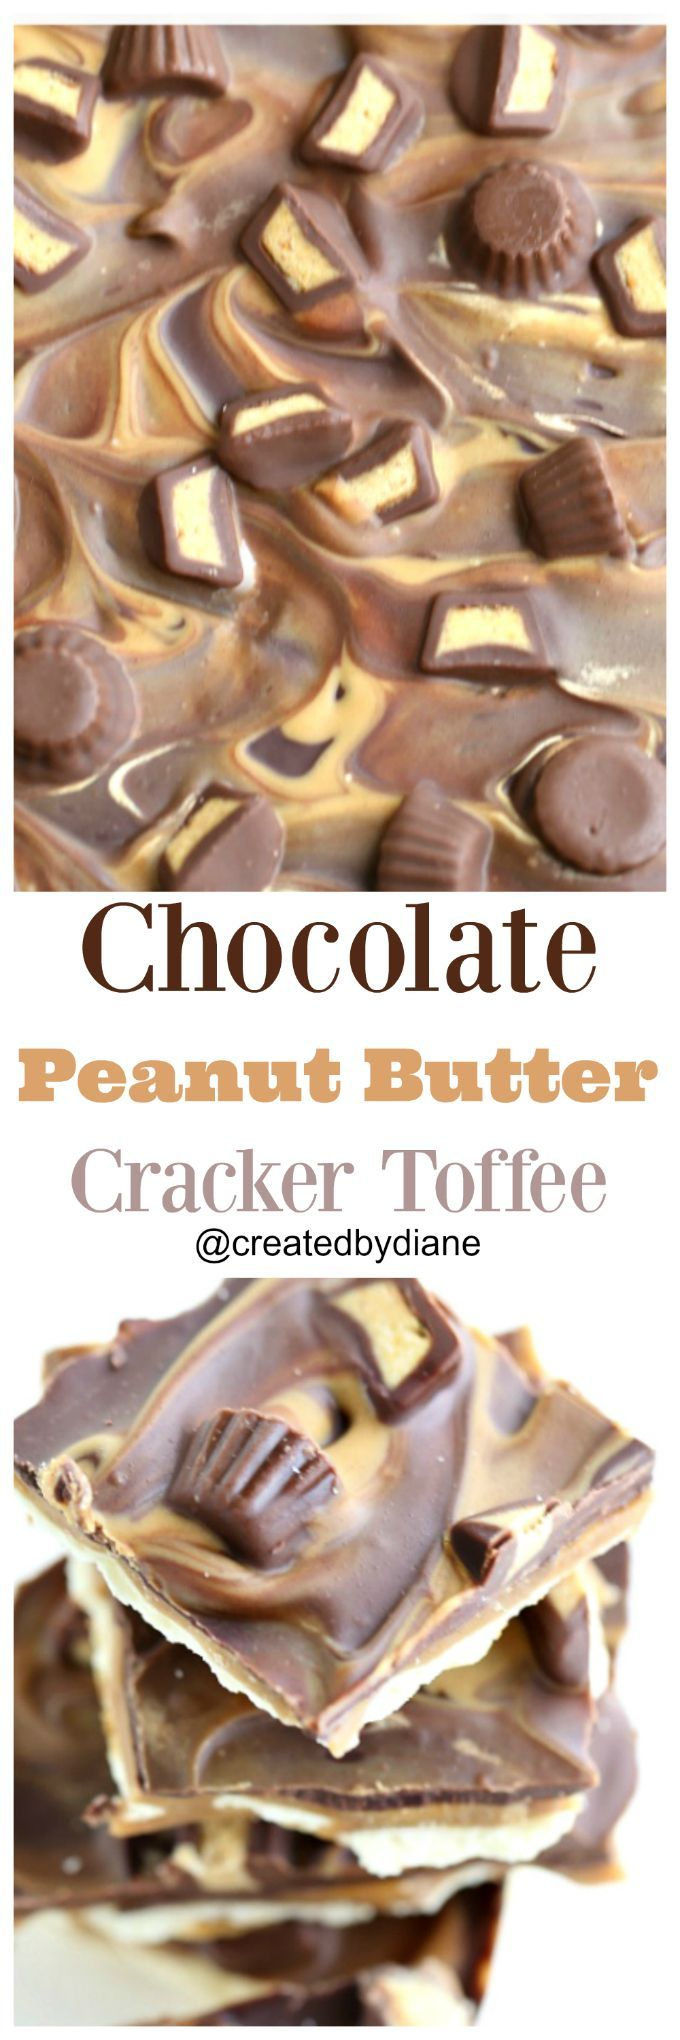 chocolate and peanut butter slathered over toffee is the ultimate reese's lovers delight